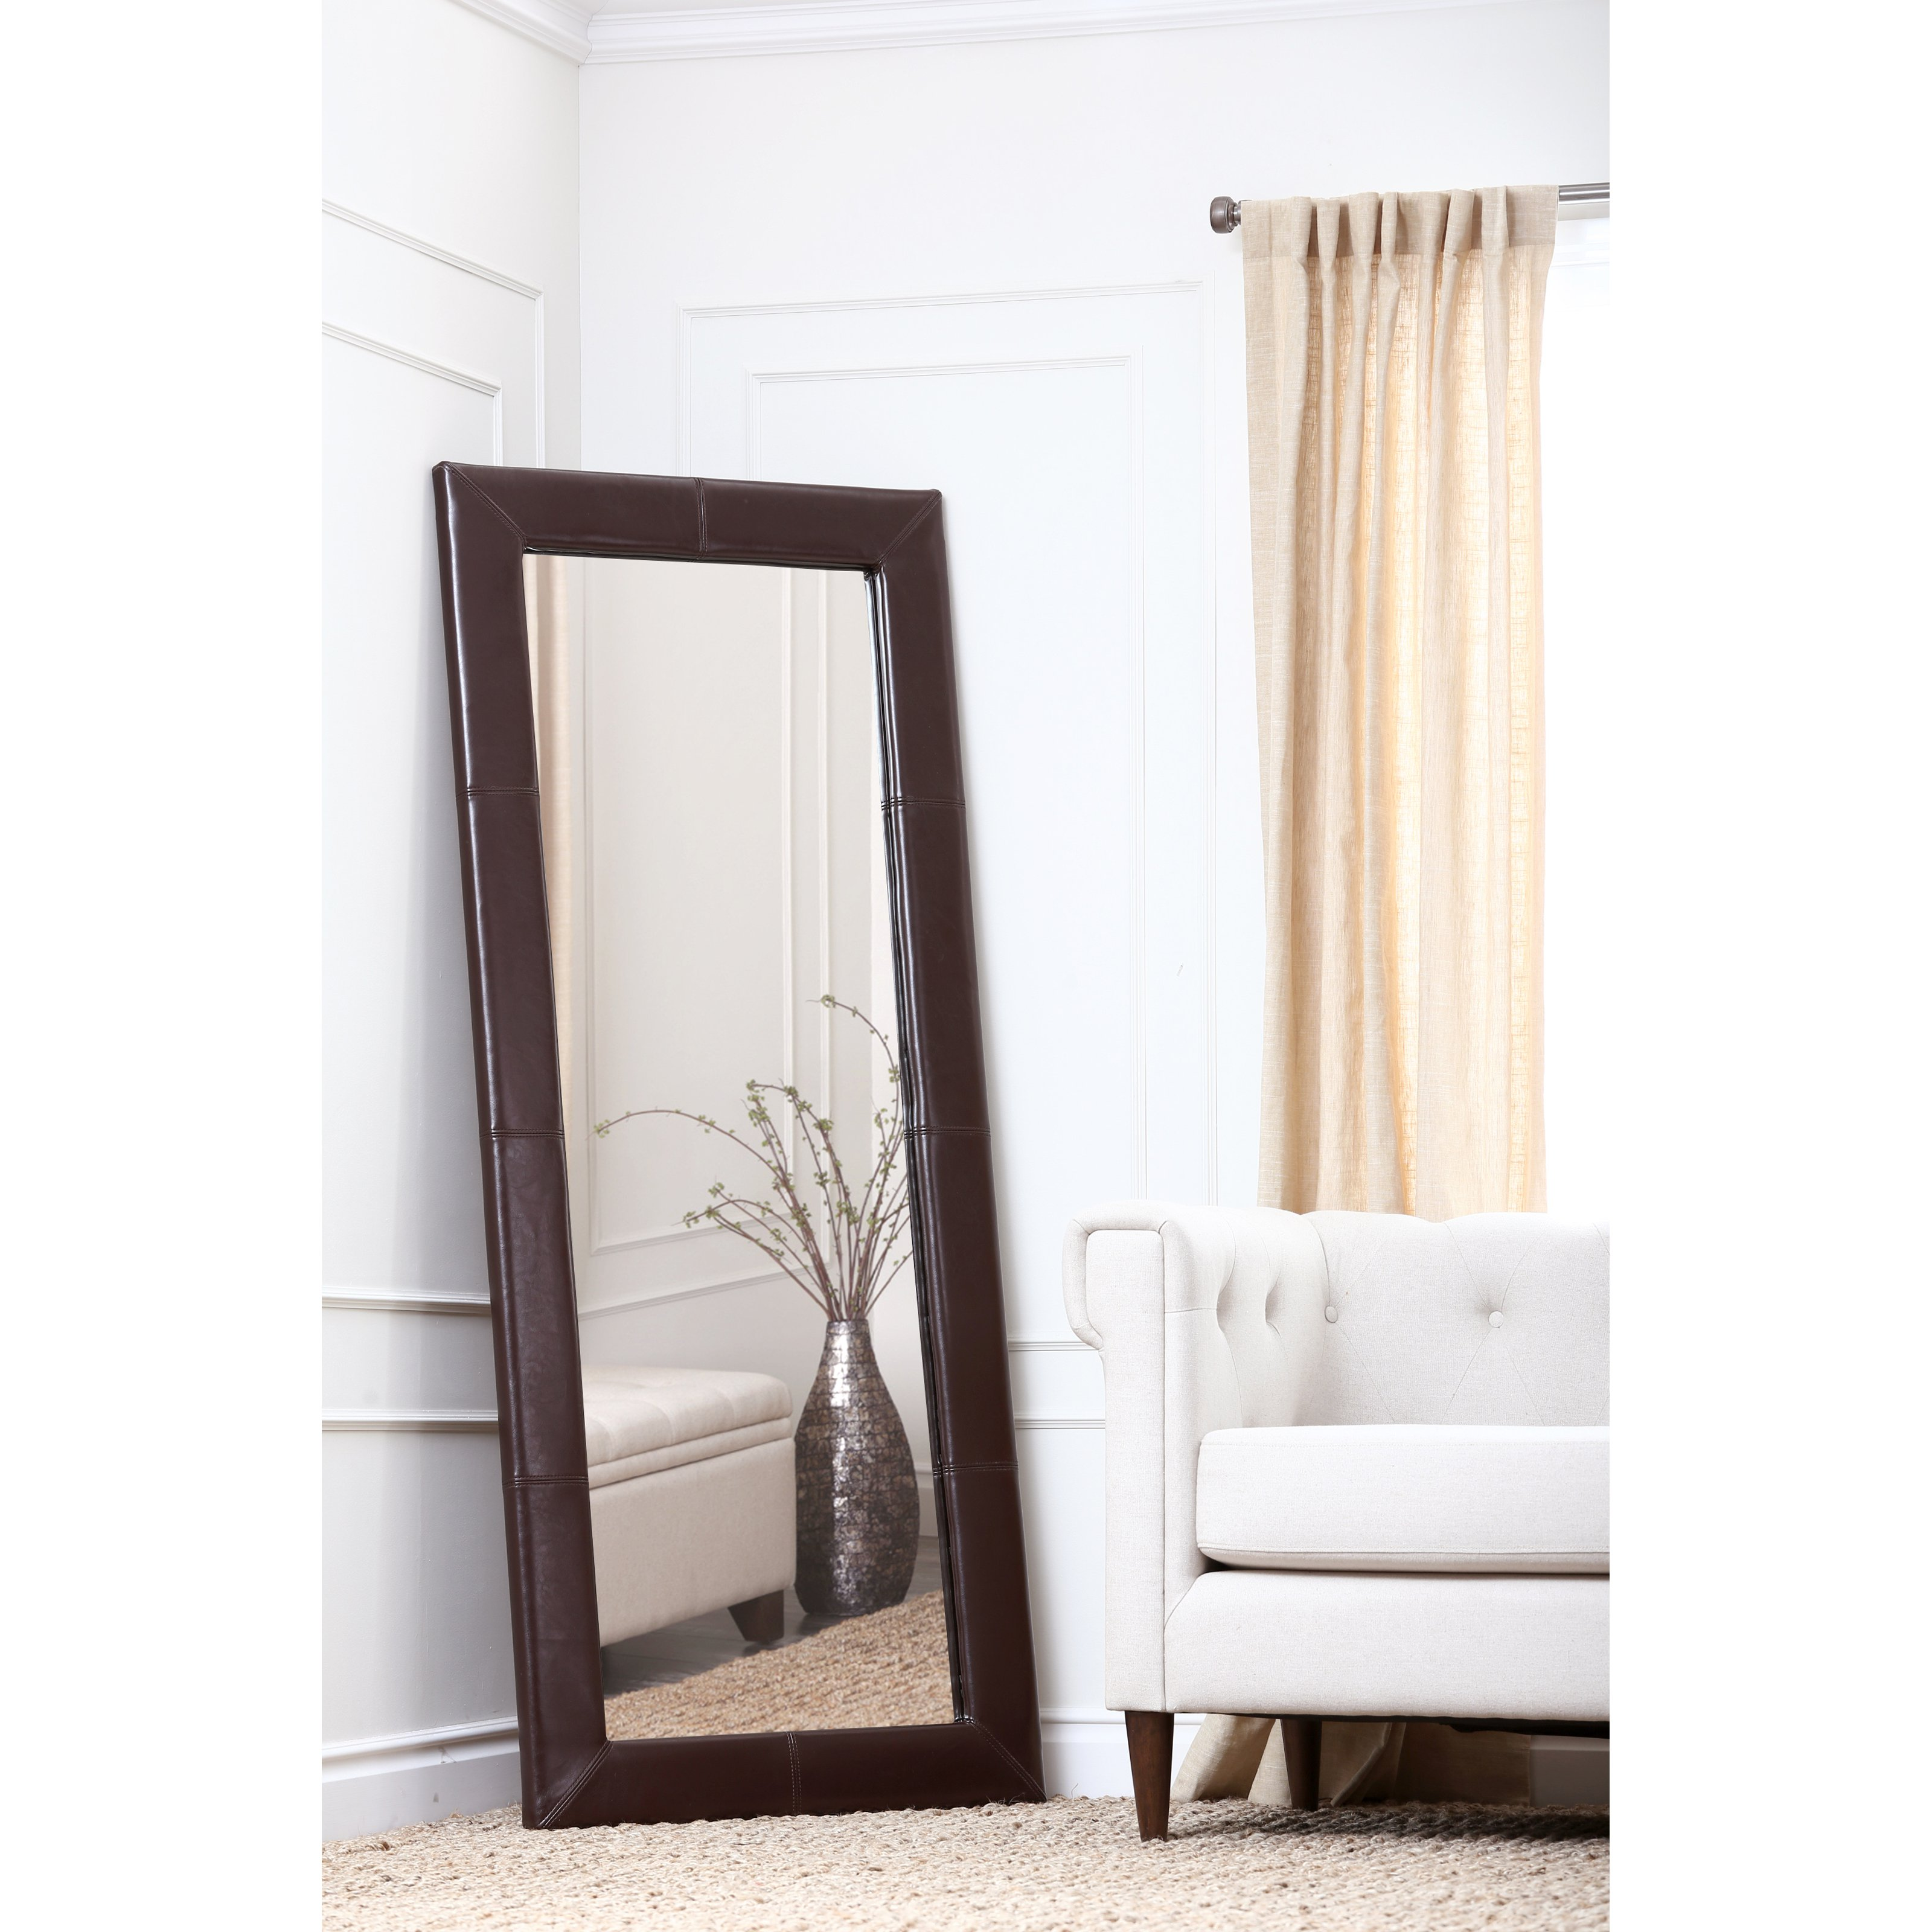 Oversized Mirrors | Floor Mirrors Ikea | Oval Mirrors